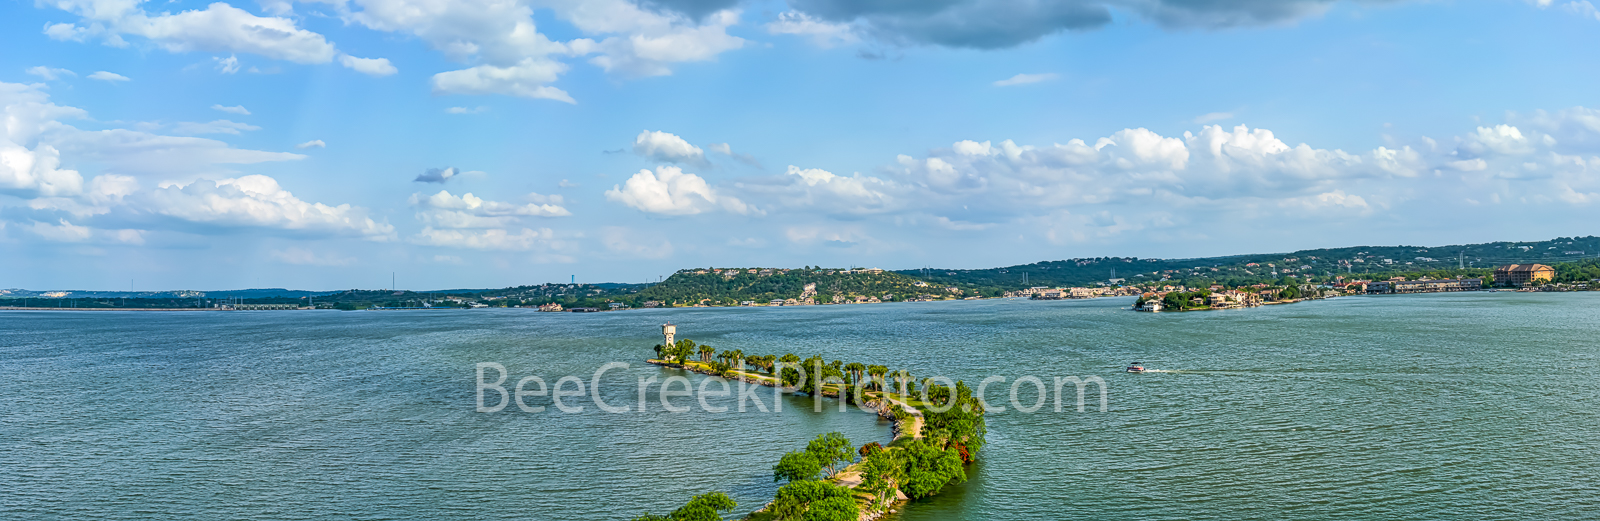 Horseshoe Bay Lighthouse View Pano - Horseshoe Bay Lighthouse View in Marble Falls on this peninsula on Lake LBJ in the hill...